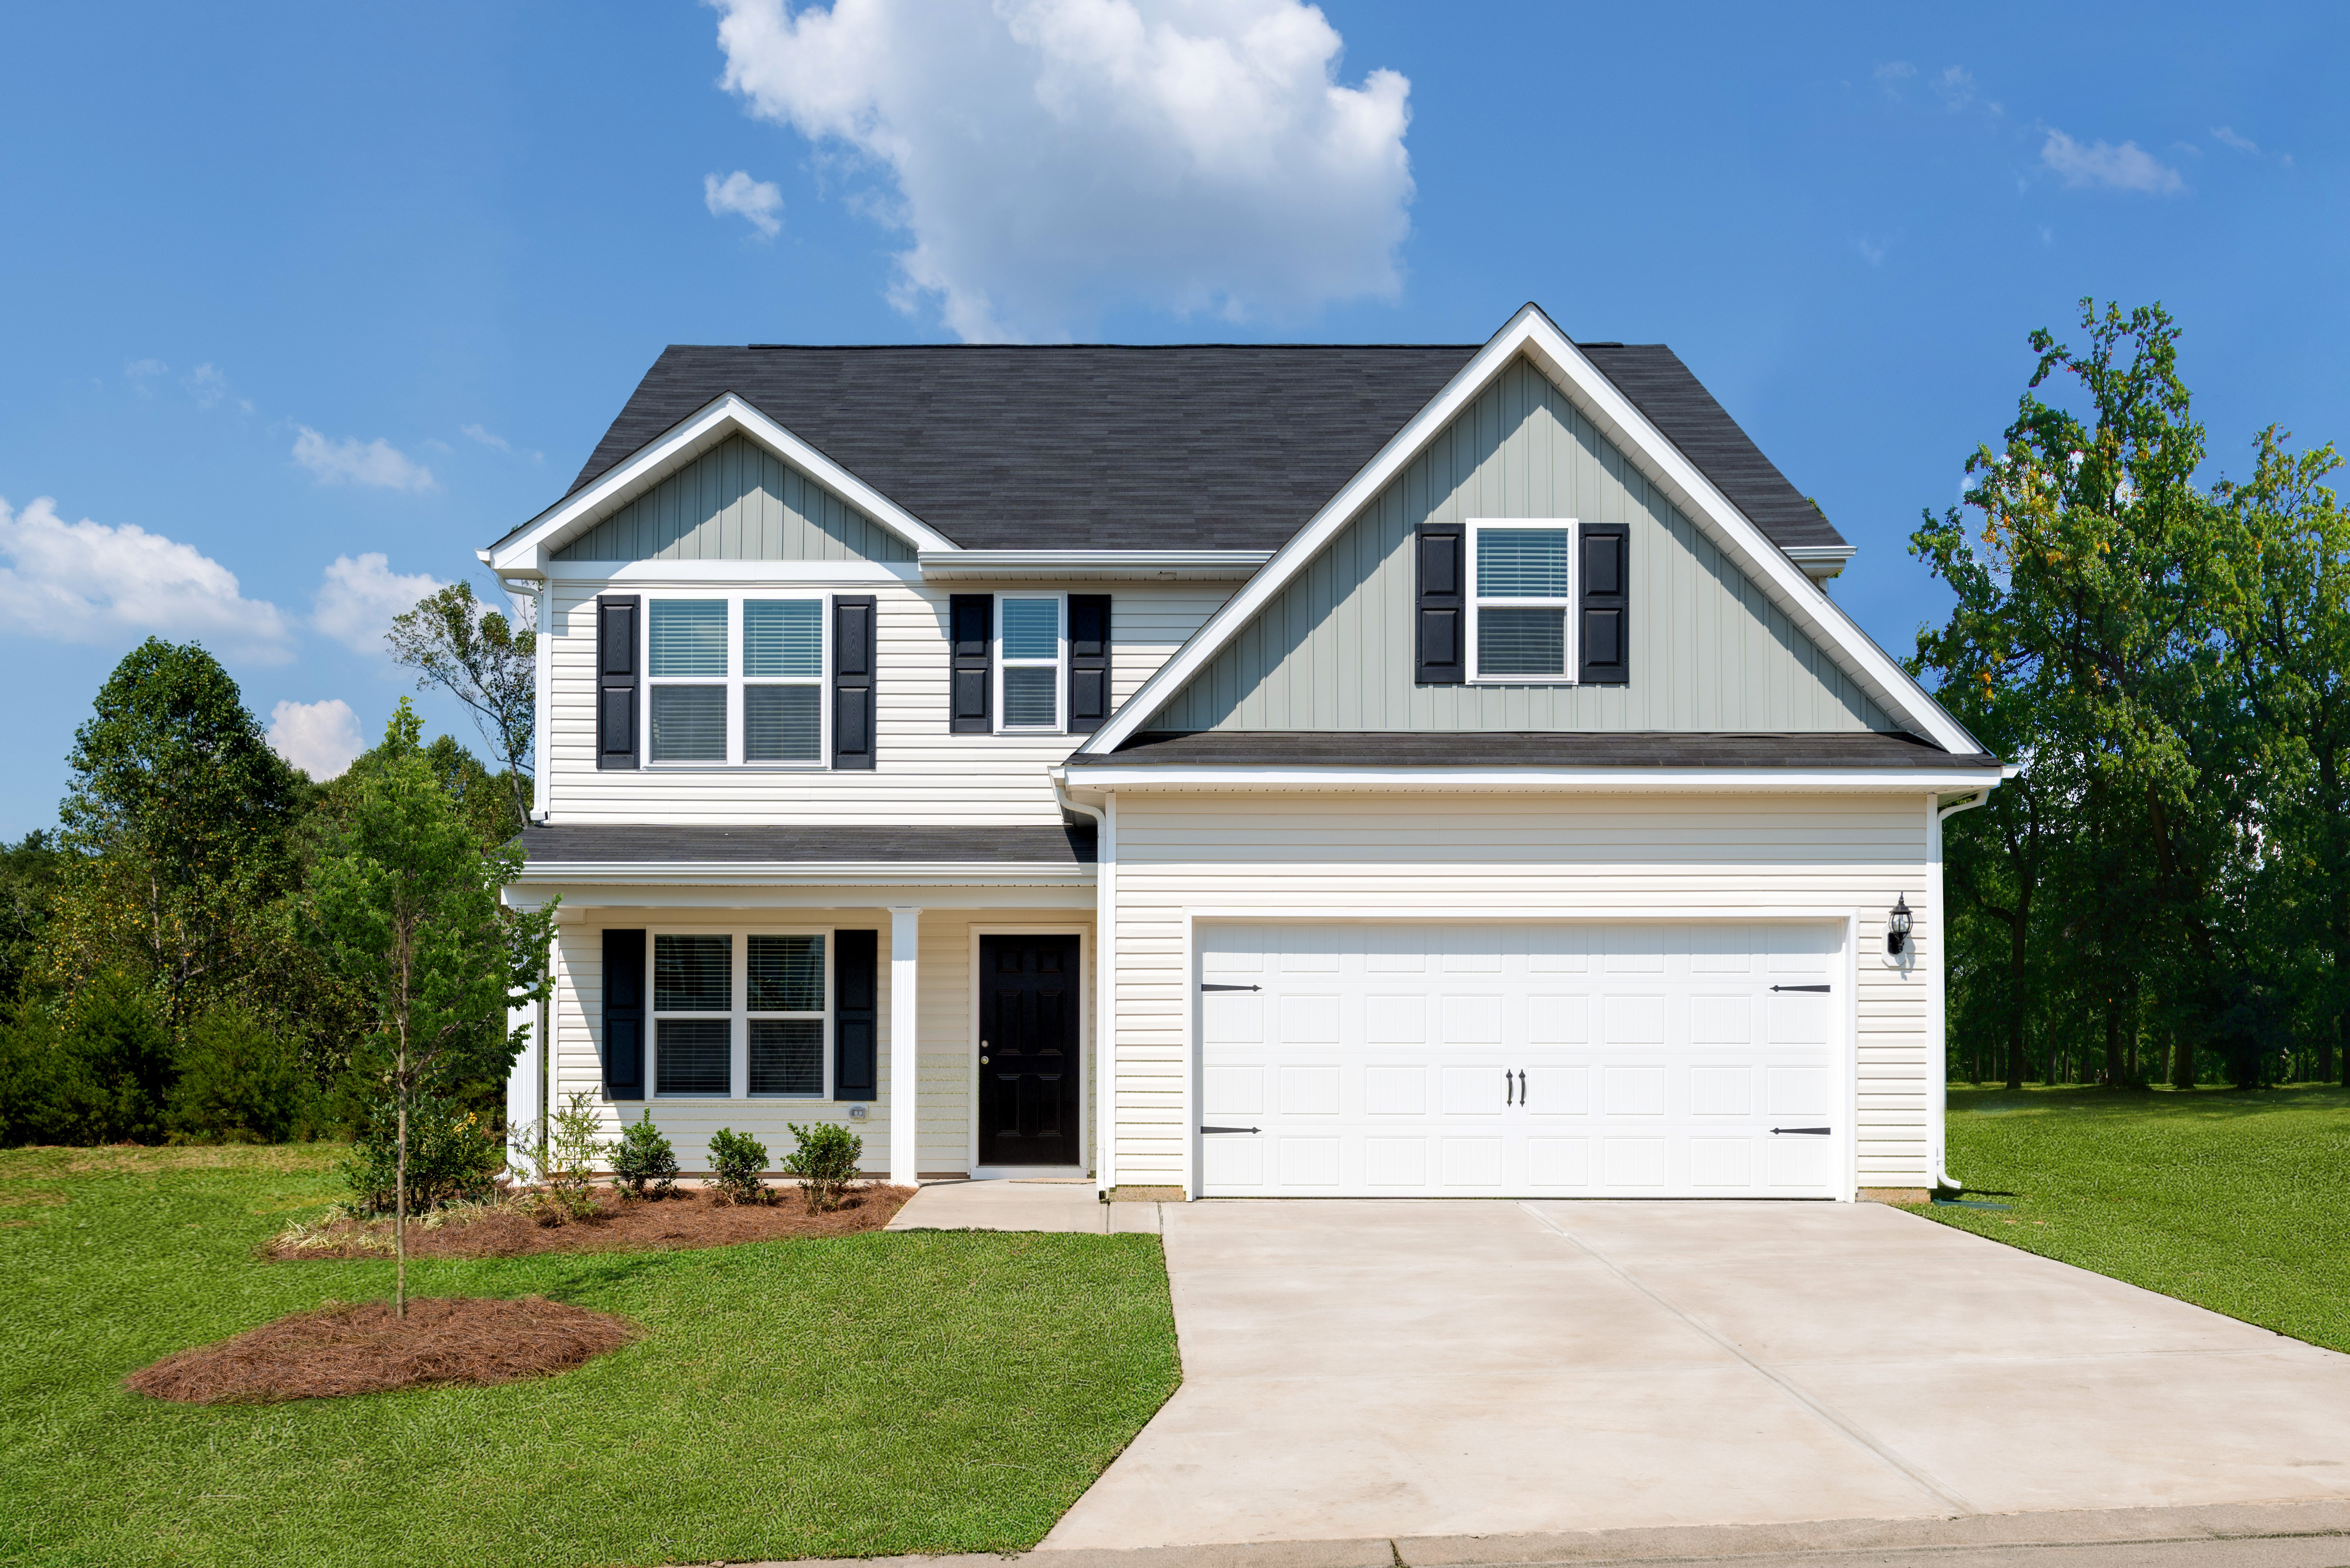 The Hartford by LGI Homes at Harrison Cove